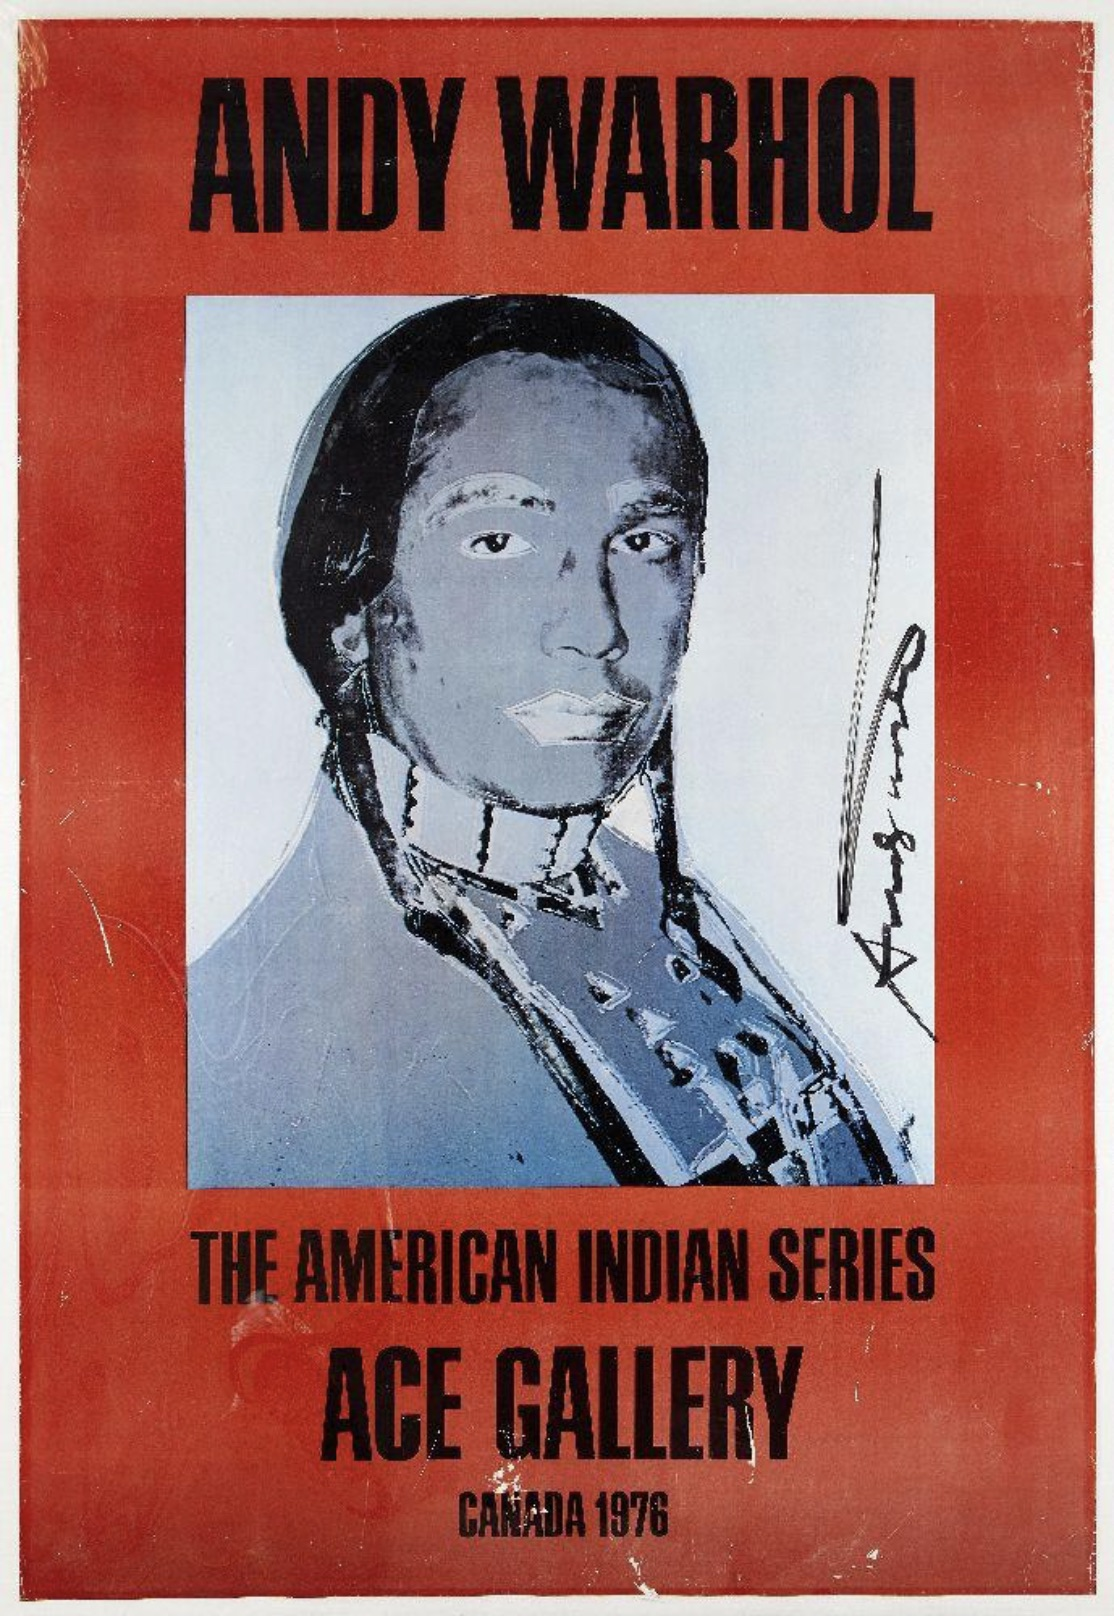 Andy Warhol - The American Indian series (Red)